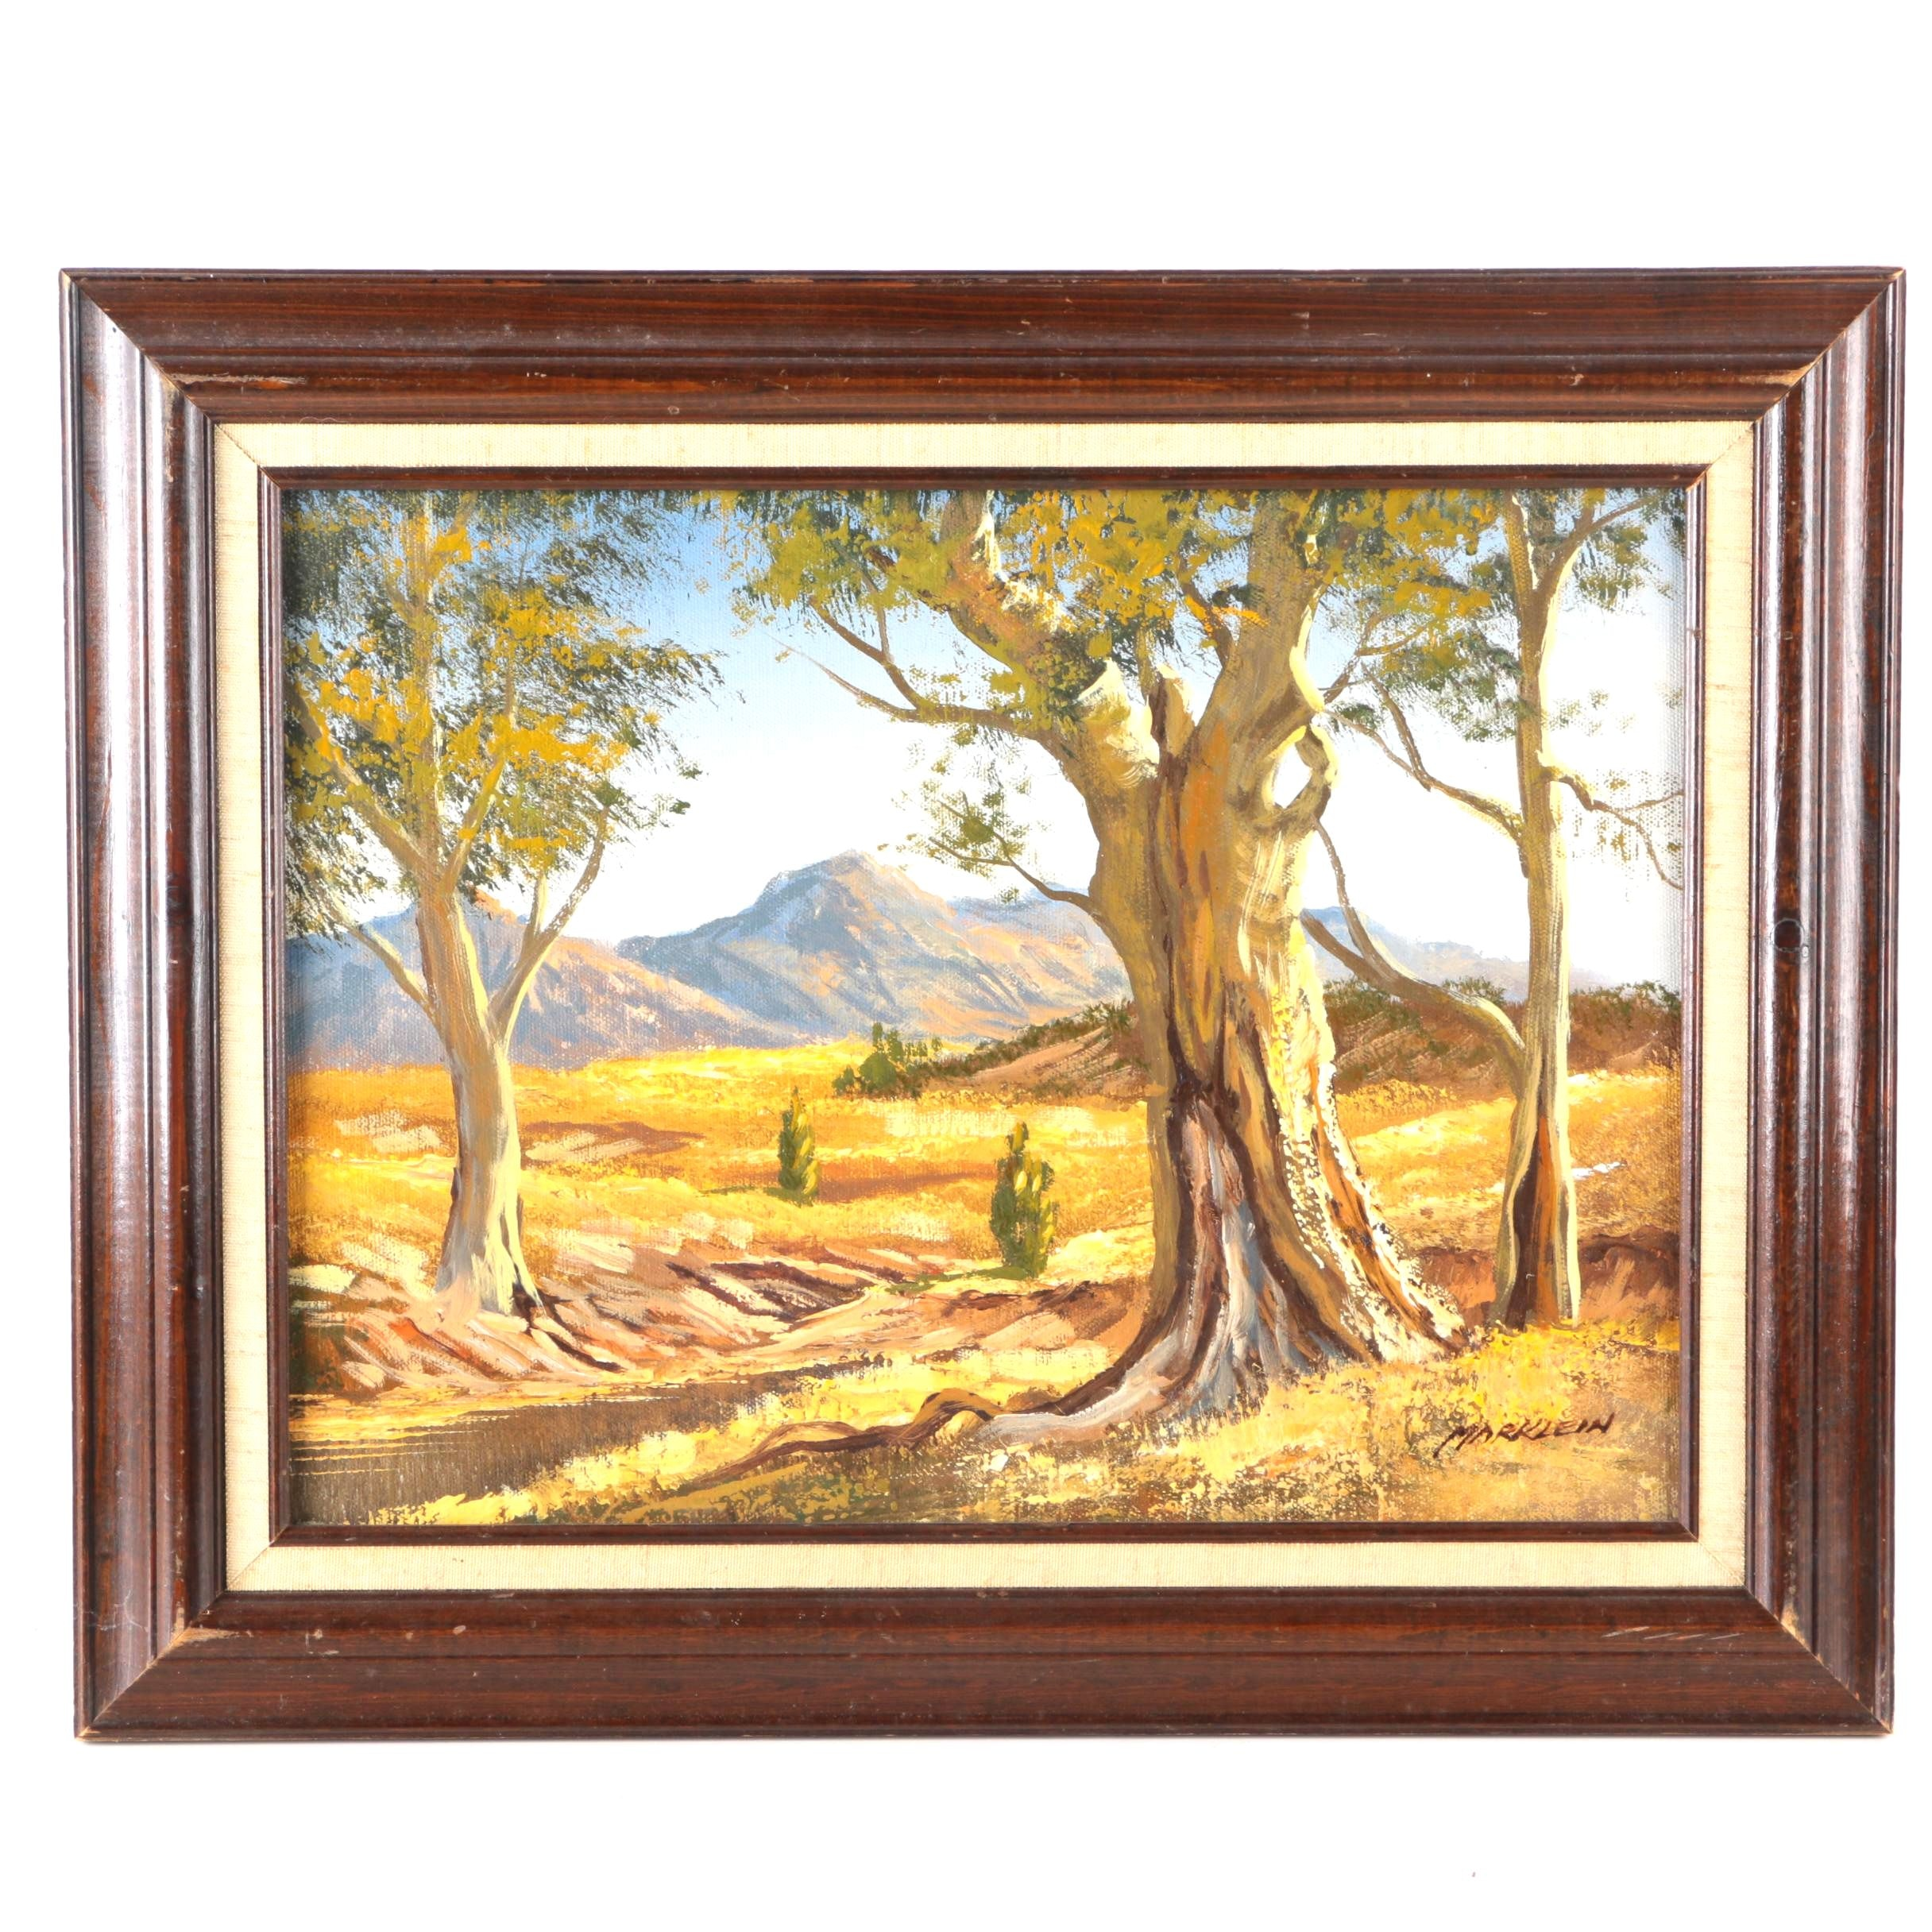 Signed Oil on Board Landscape Painting